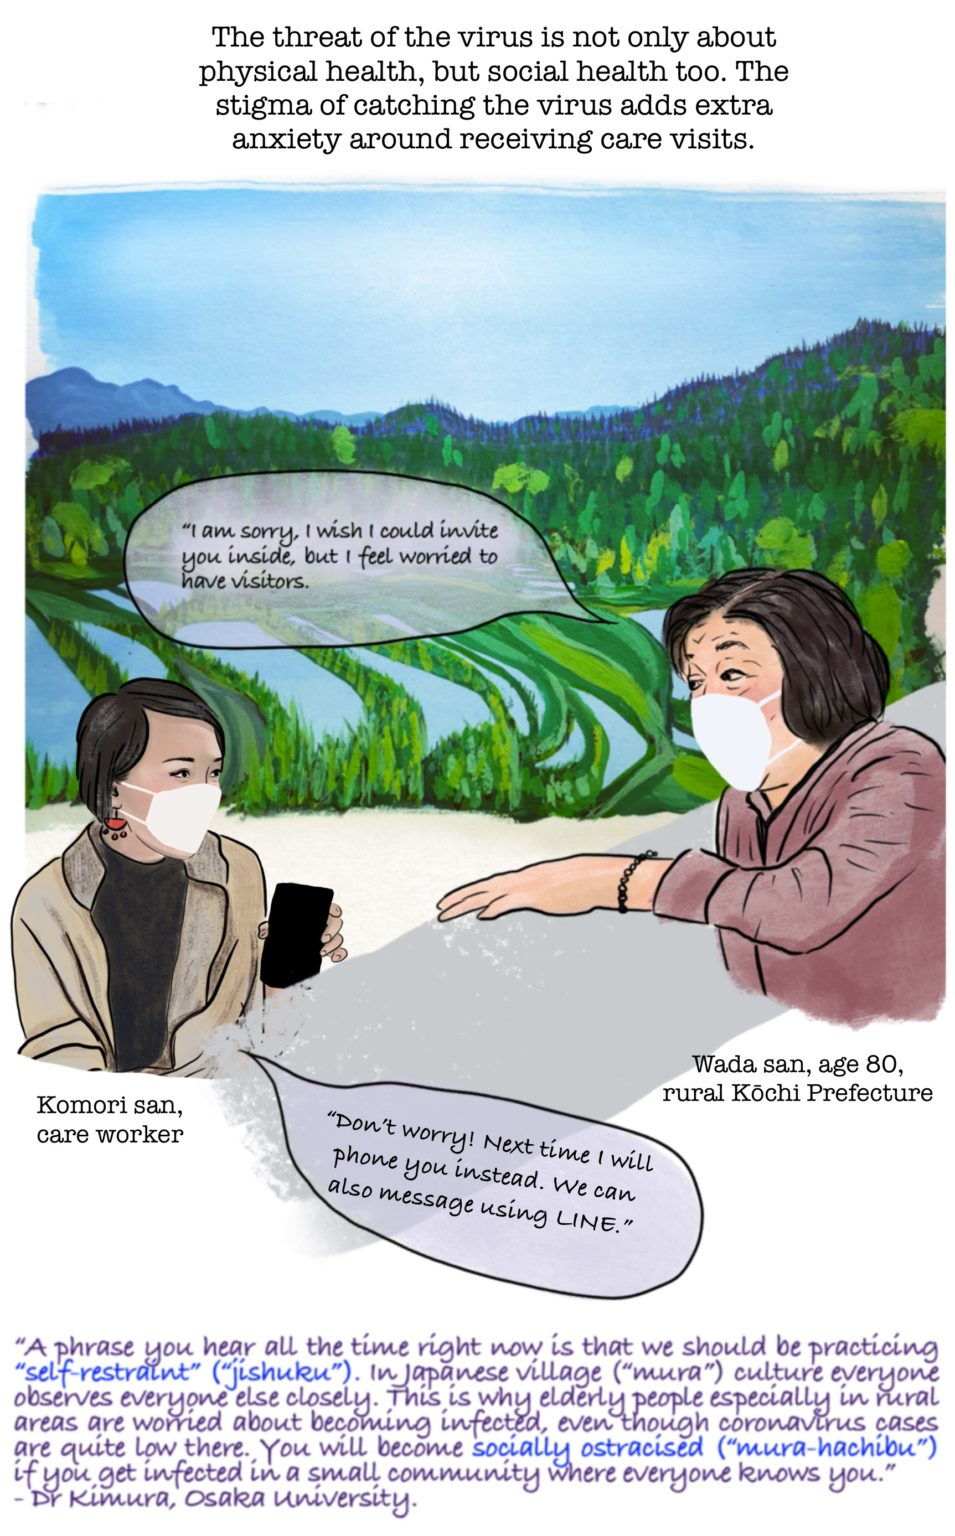 cartoon image of two woman talking about fears of catching COVID-19 from Care workers